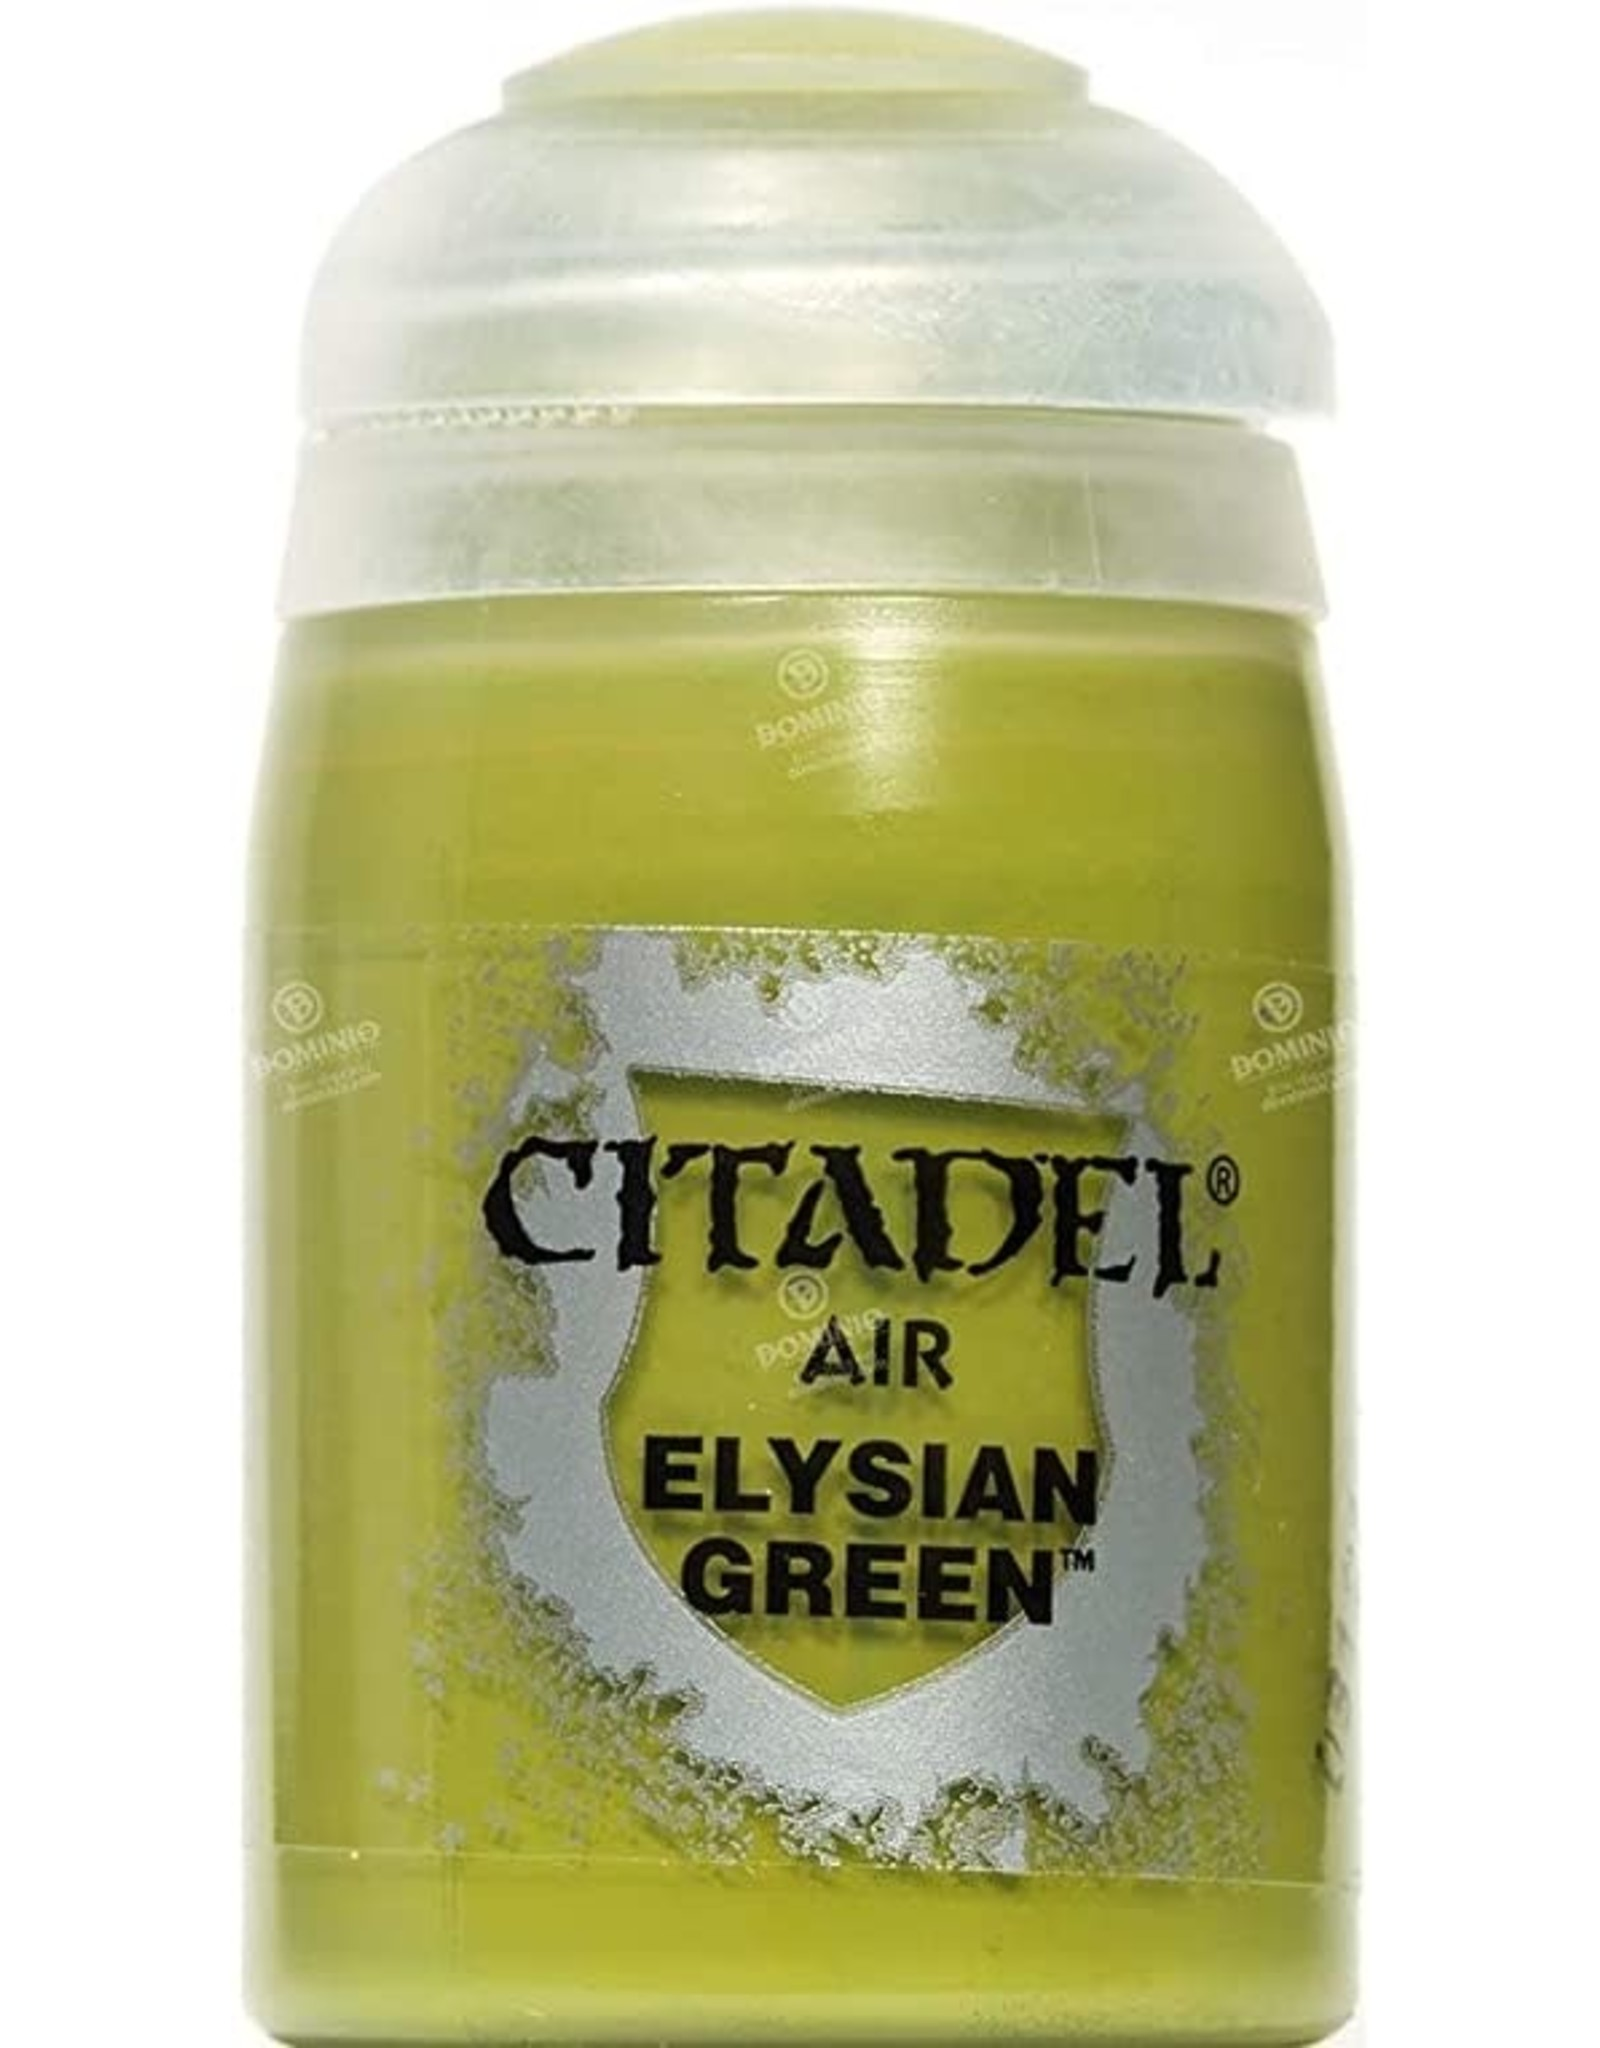 Games Workshop Citadel Paint: Elysian Green Air (24 ml)